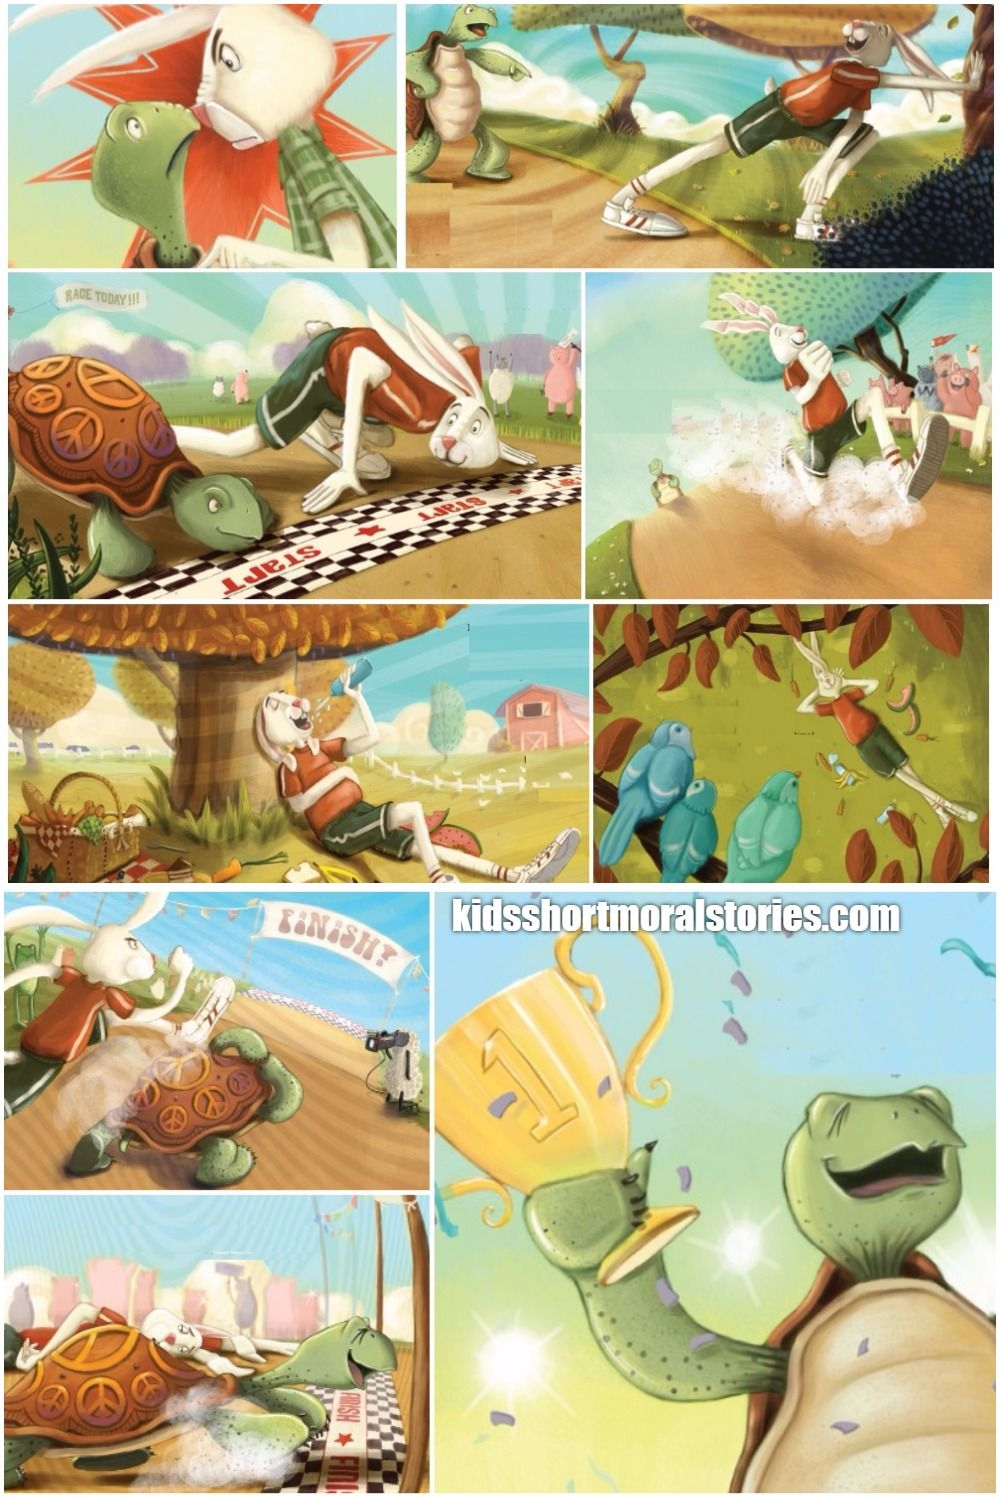 Hare And Tortoise Short Story With Pictures With Images